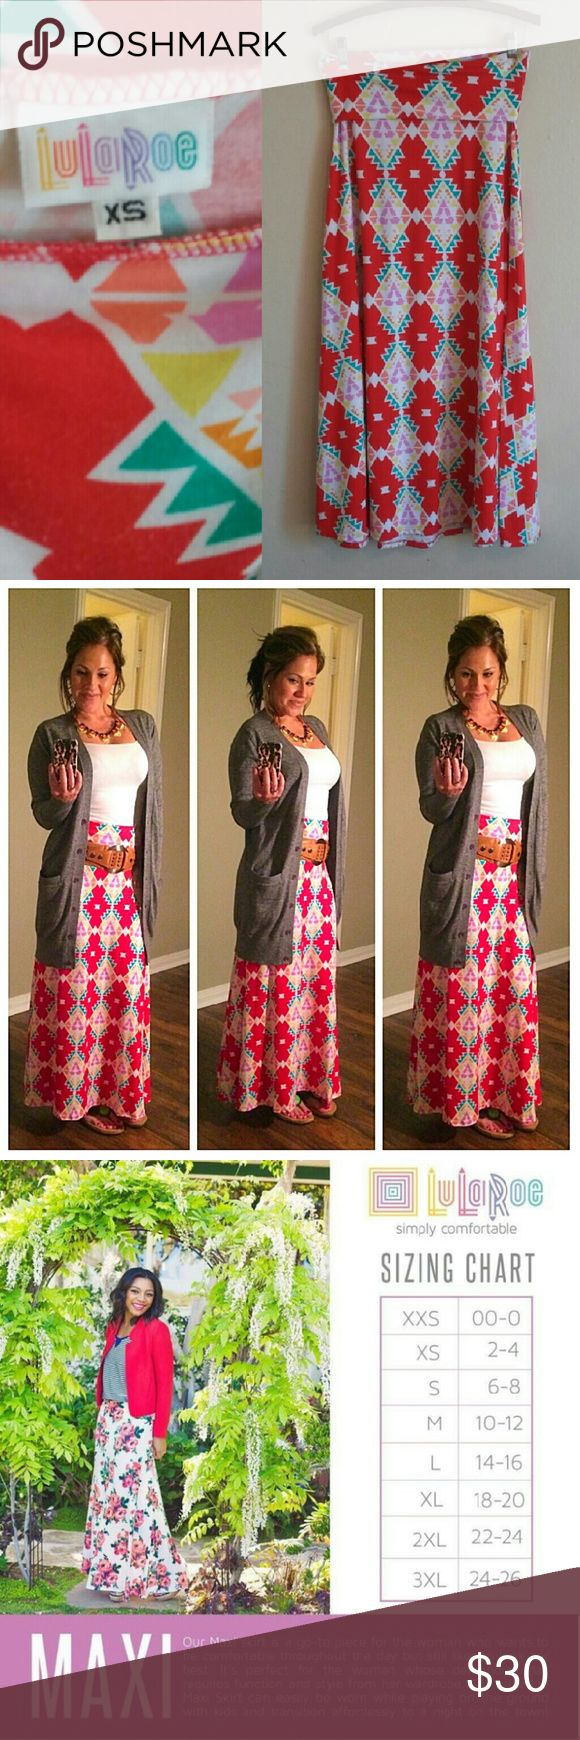 """LuLaRoe Aztec Print Maxi Stretchy red, turquoise, pink, orange and yellow Aztec print maxi skirt from LuLaRoe. Foldover waistband. About 39"""" long, 29"""" waist unstretched. Can be made longer a bit by folding the waist over less. There are many Youtube videos showing the multiple ways to wear this skirt. The last photo (taken from Pinterest) shows a few. 96% spun polyester, 4% spandex. Machine washable. Excellent used condition. LuLaRoe Skirts Maxi"""